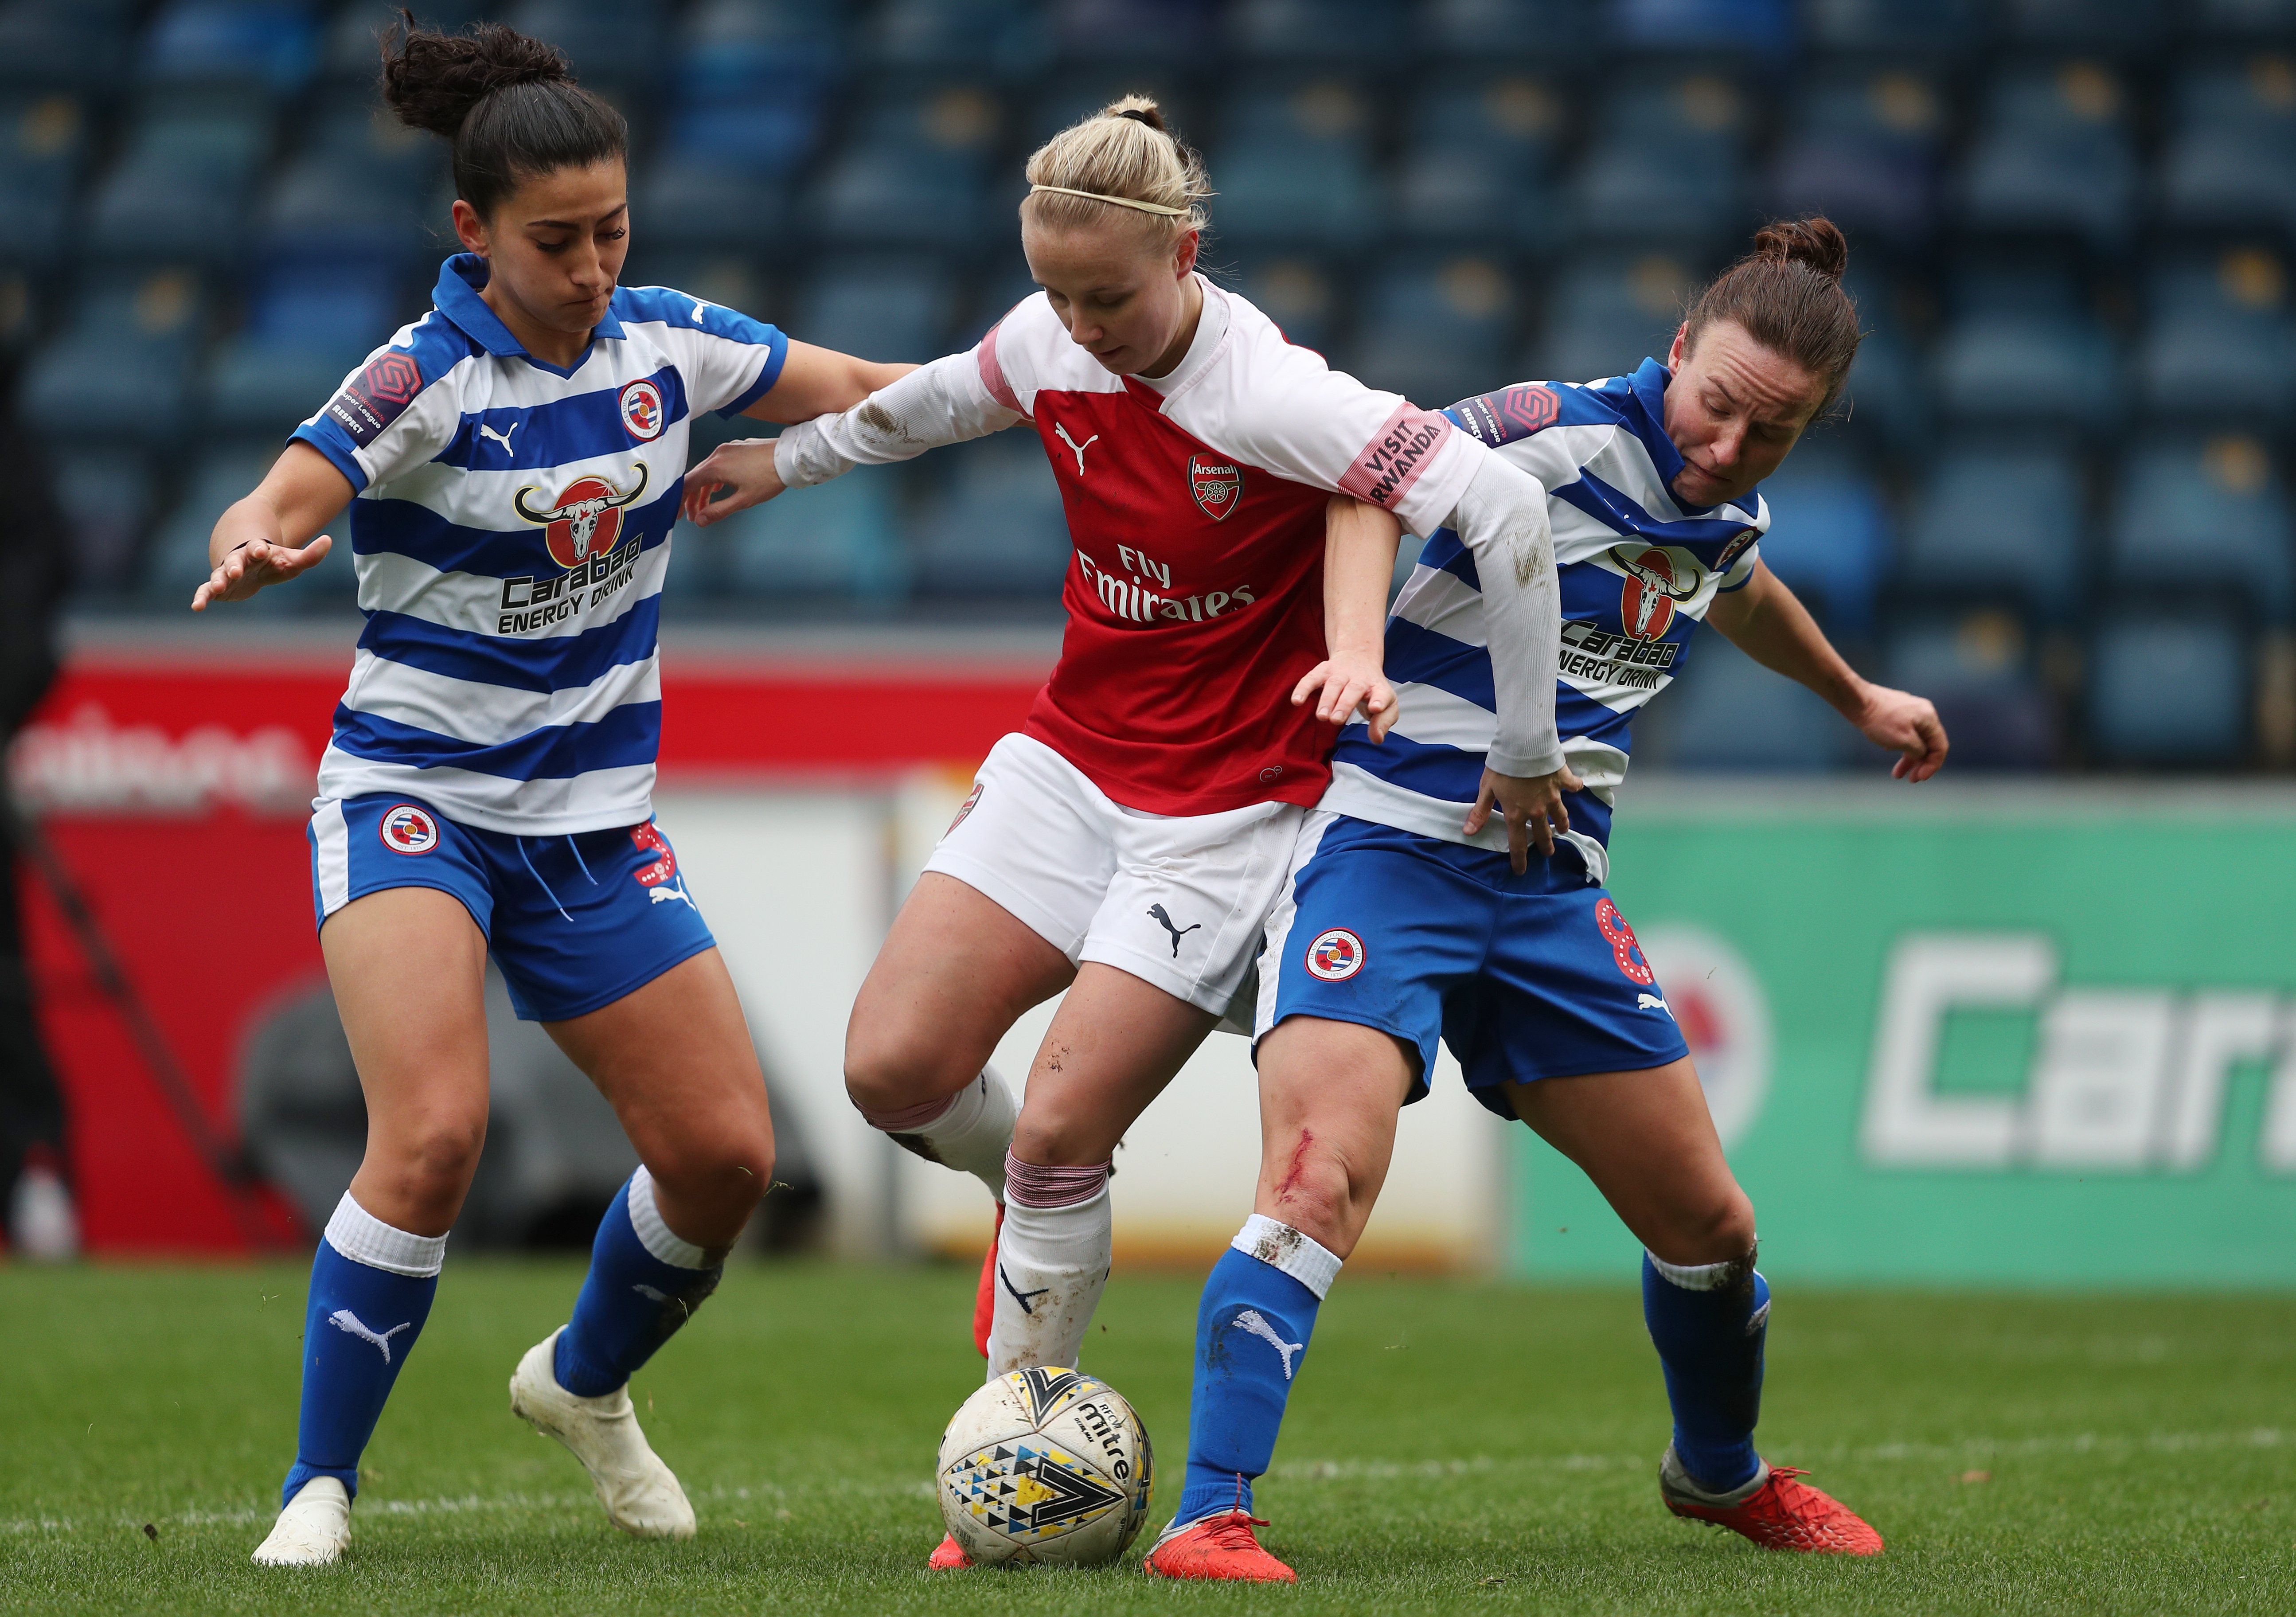 Pace setters Arsenal look to maintain position at top of Women's Super League as they travel to Reading